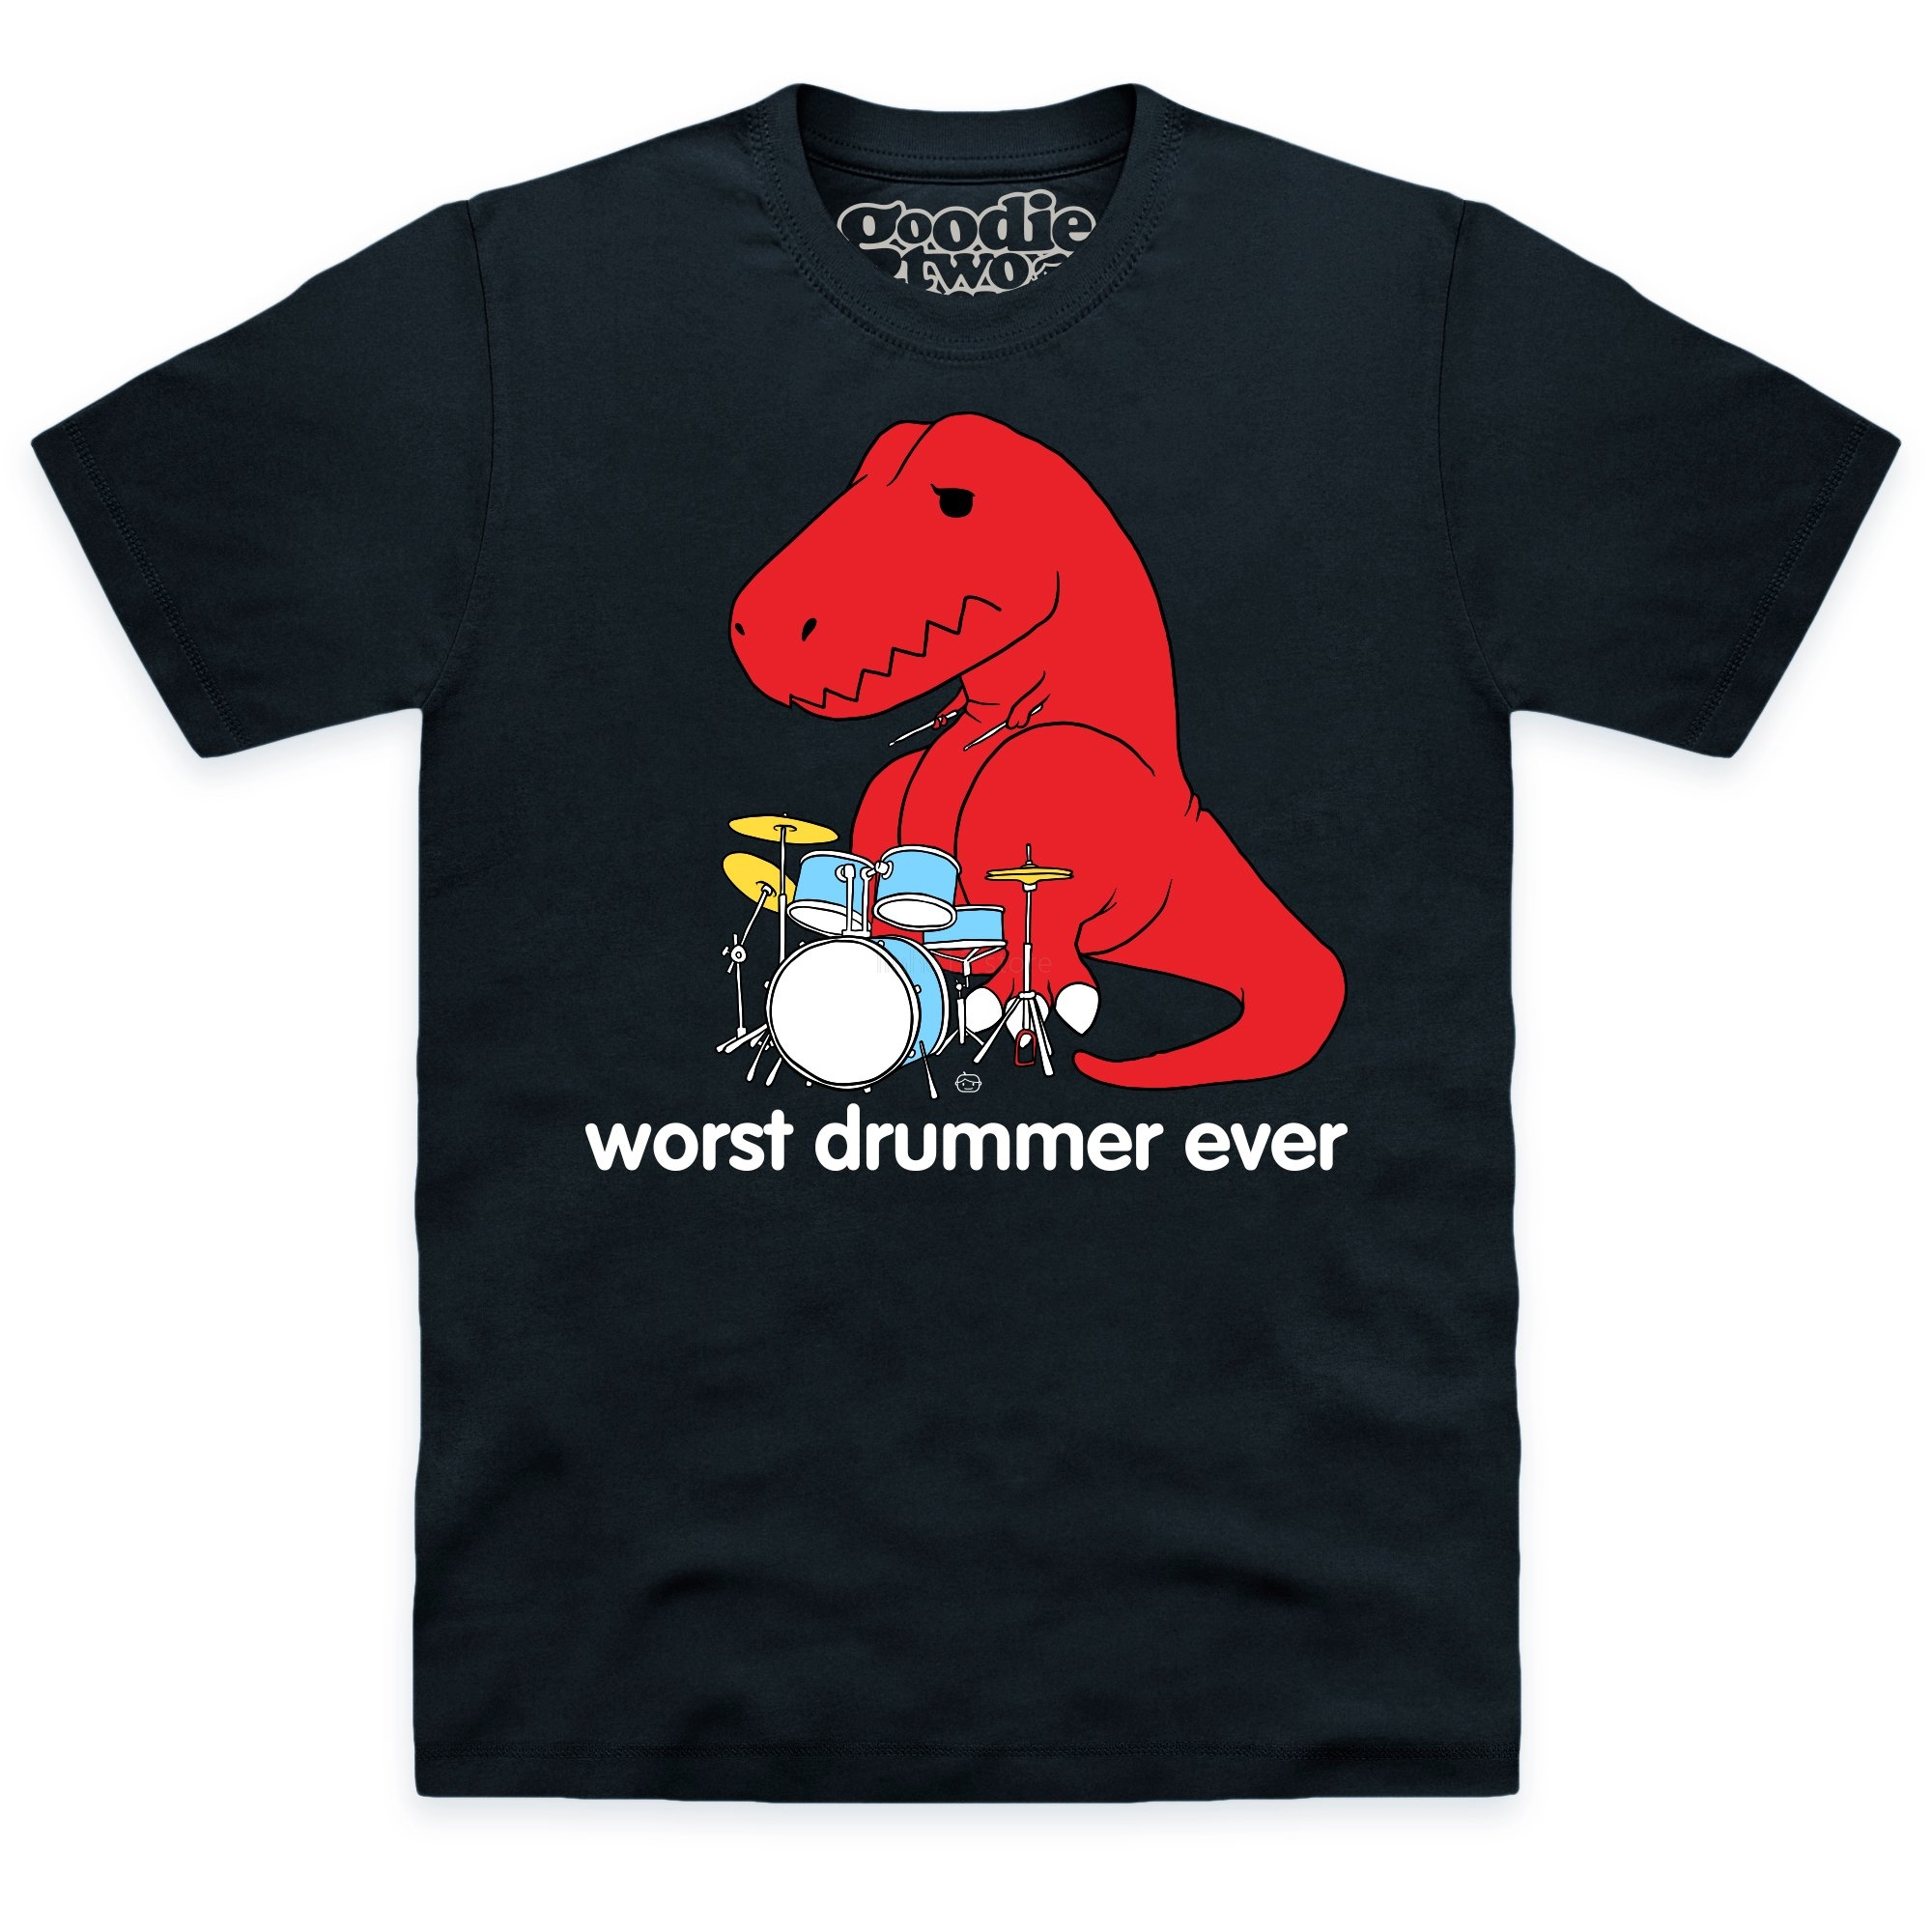 Goodie Two Sleeves Worst Drummer Ever T Shirt 2019 new streetwear men's short-sleeved T-shirt image